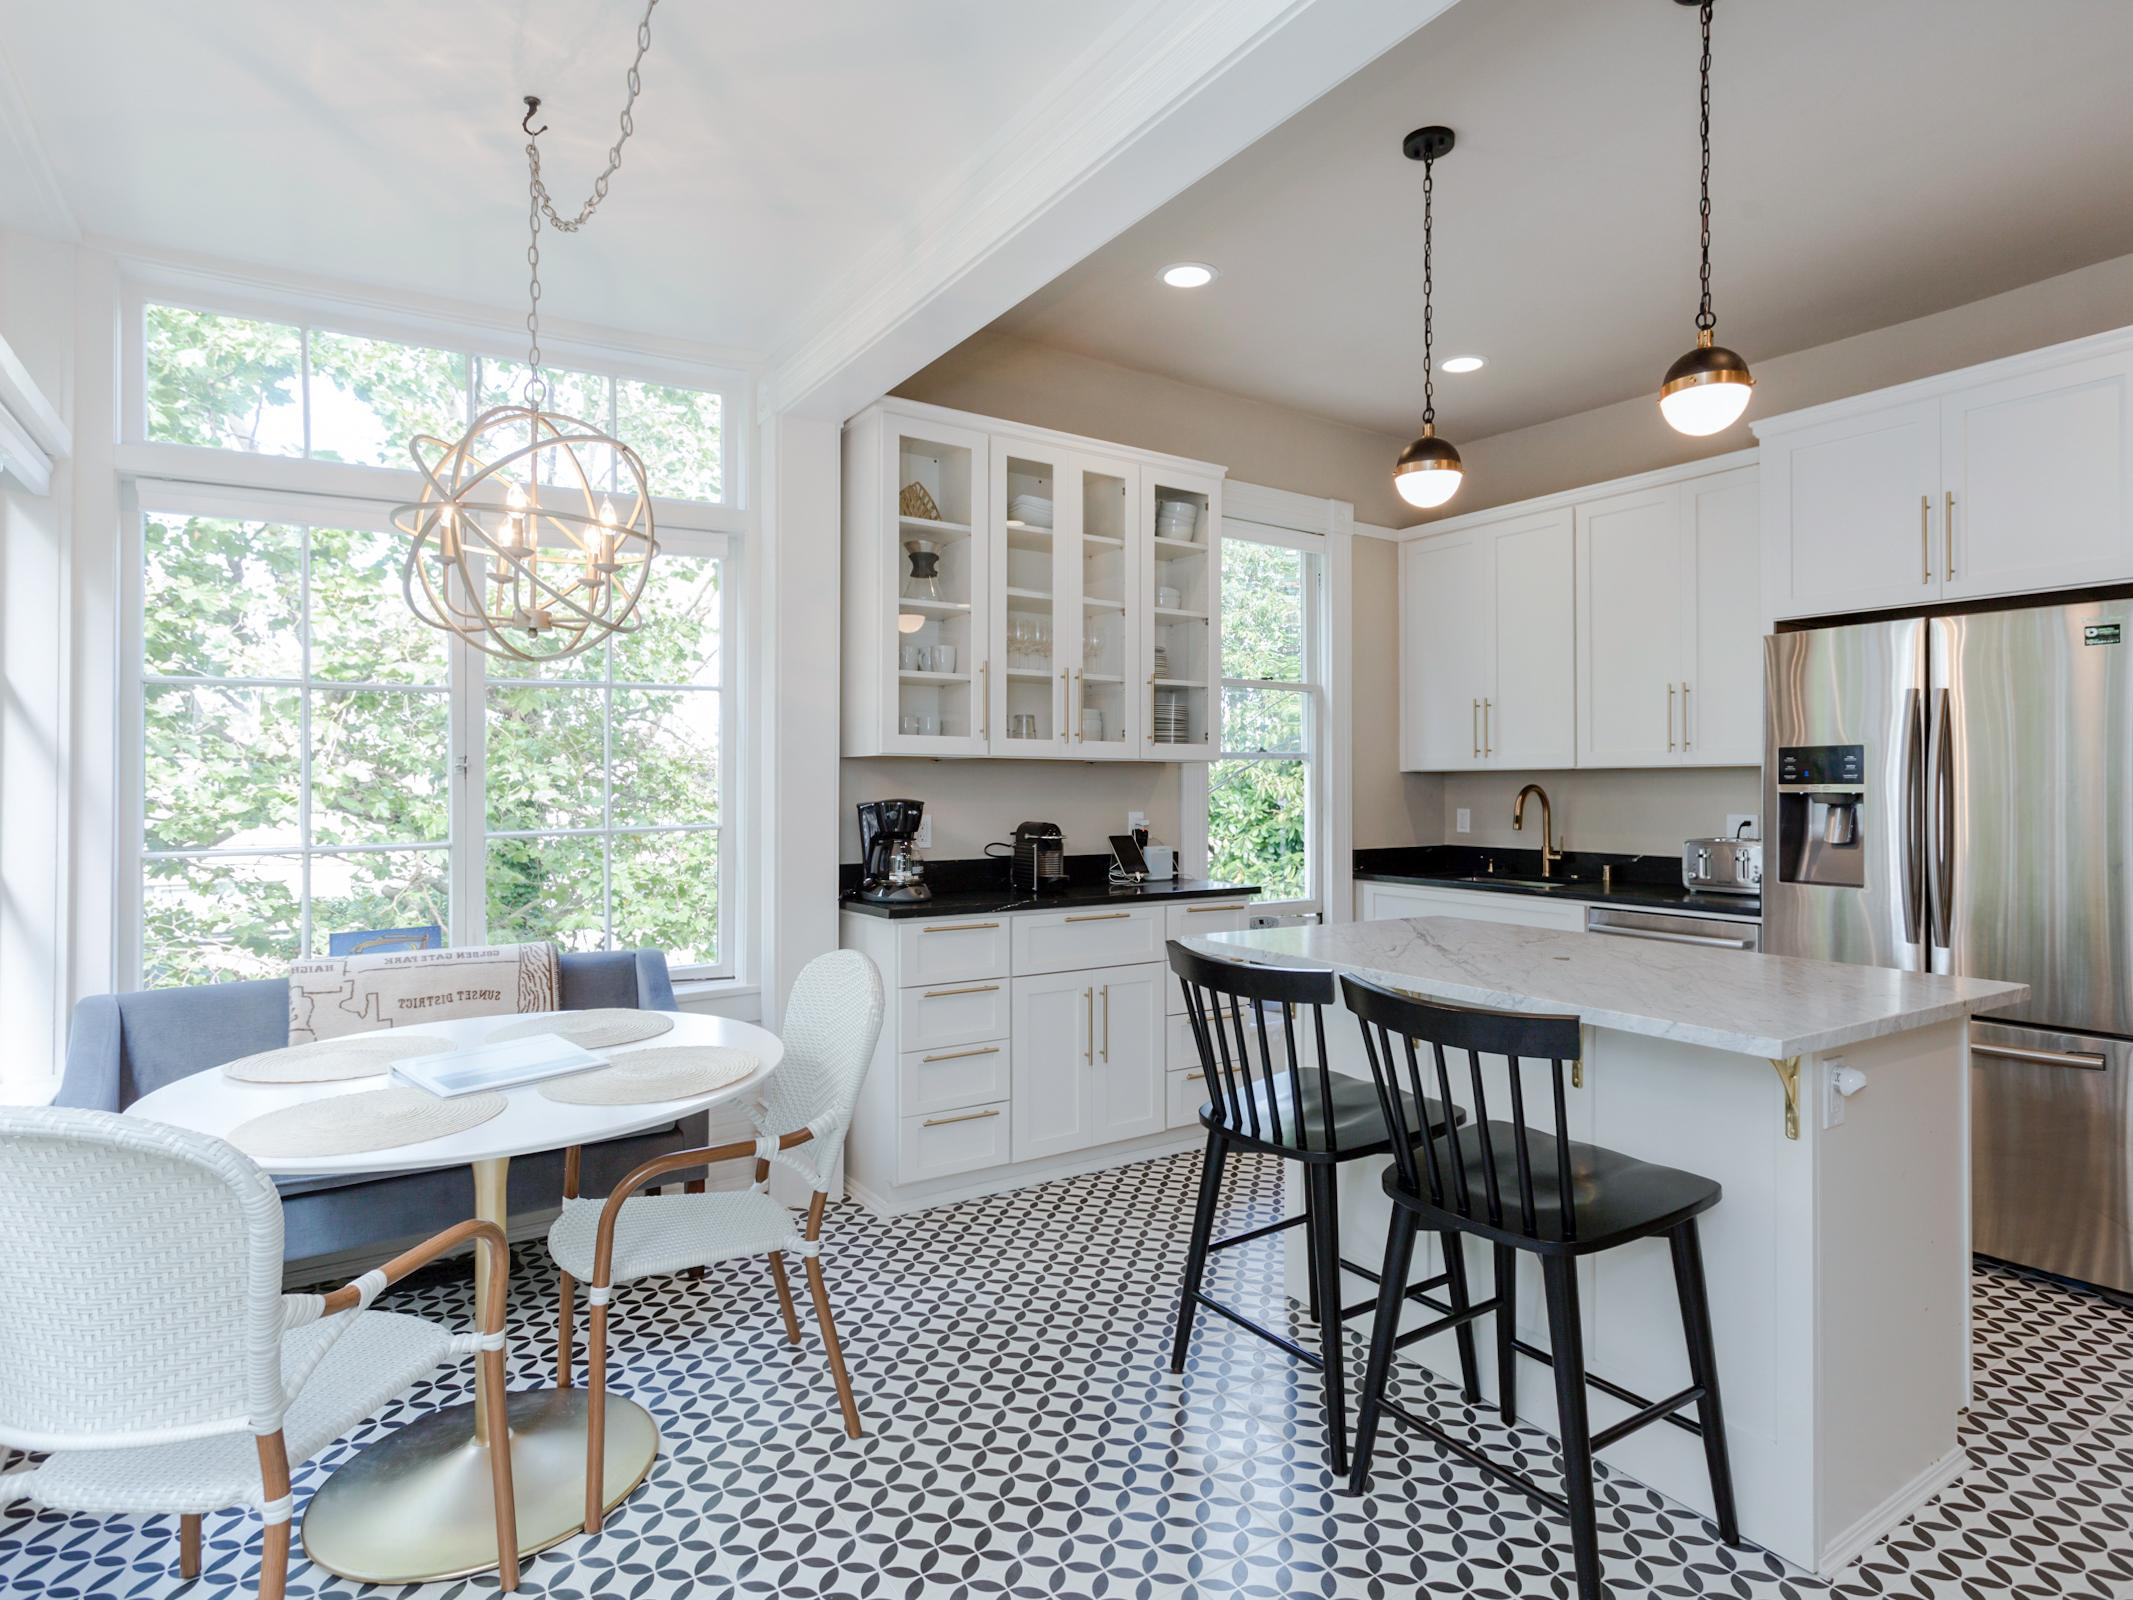 The open kitchen and breakfast nook offers a great flow for entertaining.